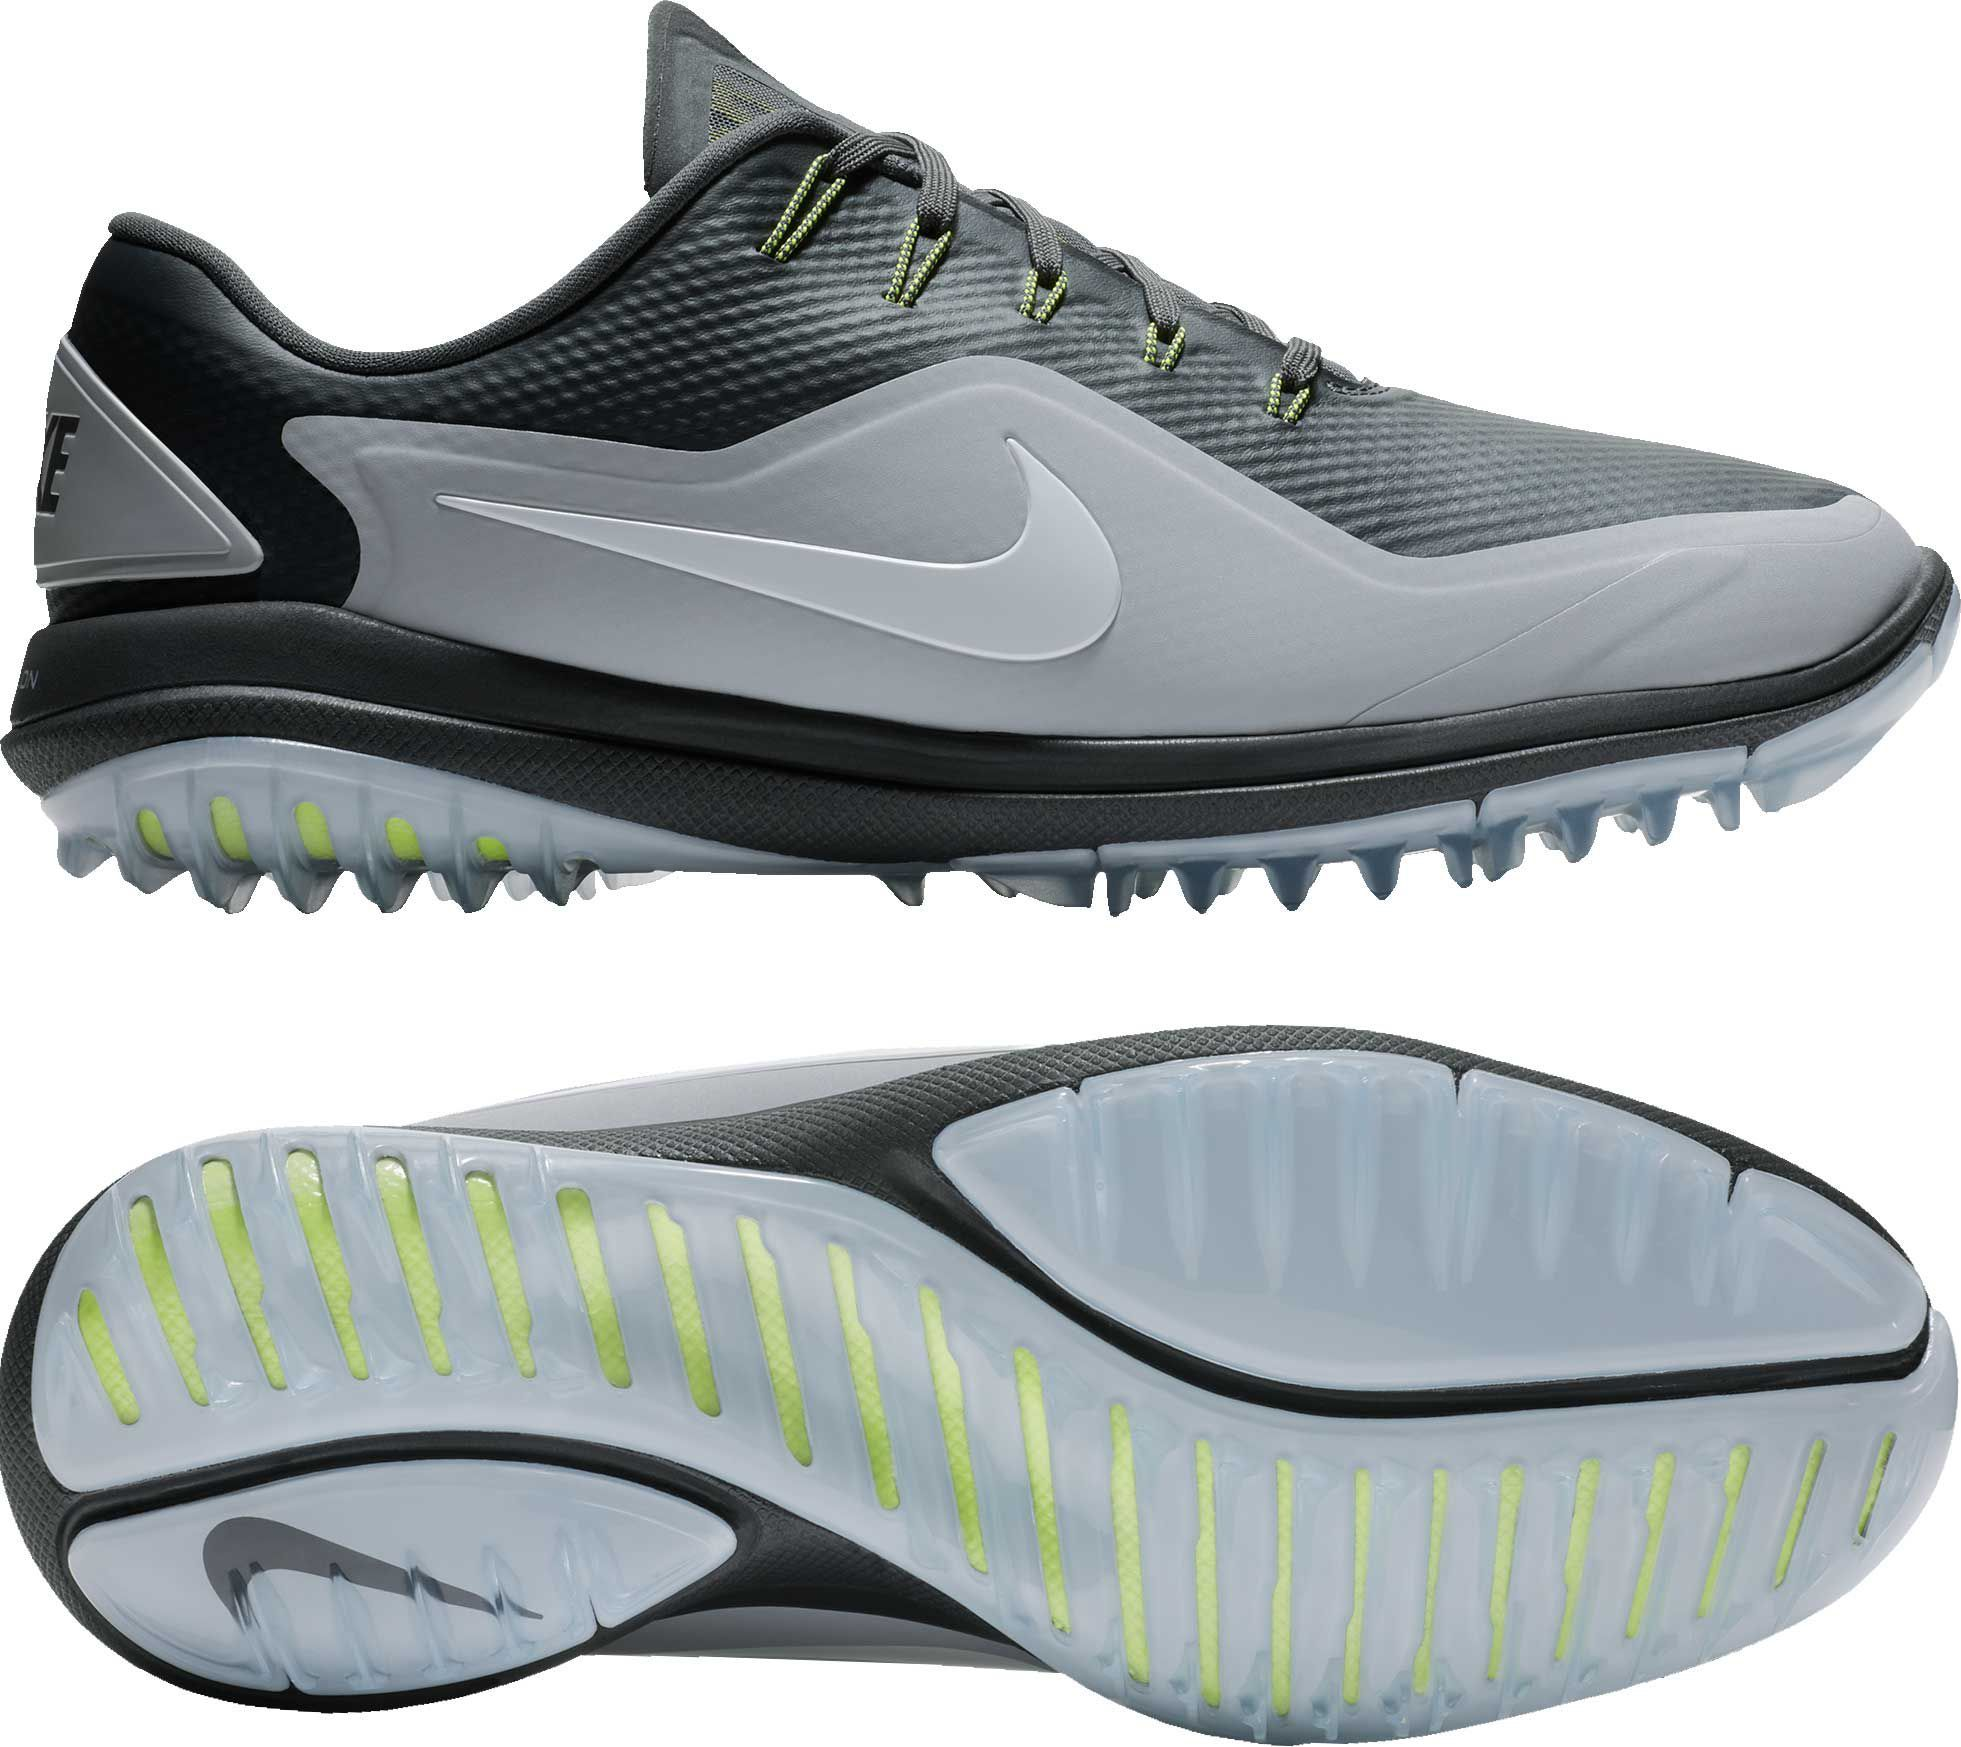 brand new 9966c 10586 Nike Lunar Control Vapor 2 Golf Shoes, Men s, Size  13.0, Grey White